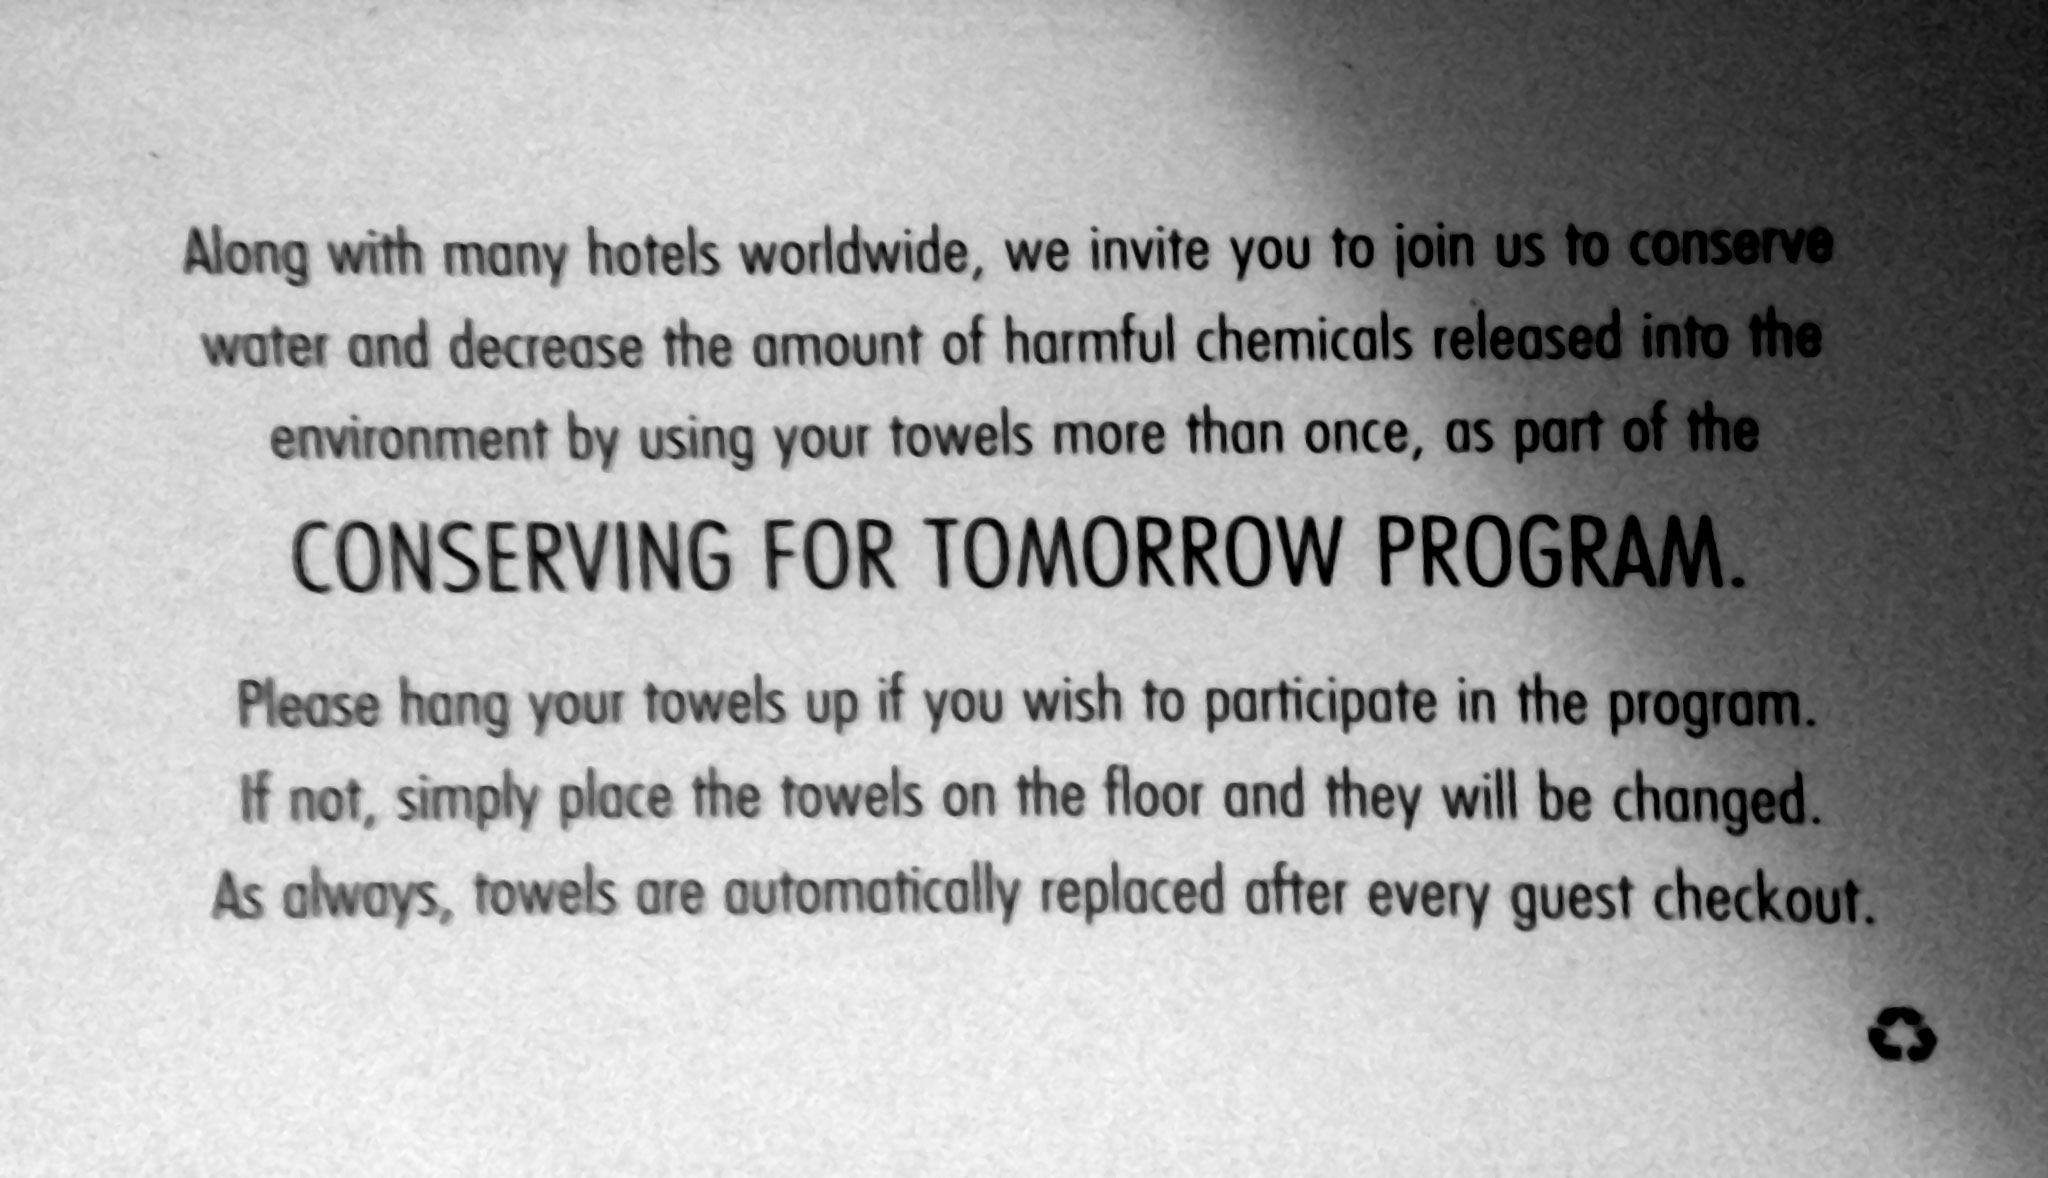 Along with many hotels worldwide, we invite you to join us to conserve water and decrease the amount of harmful chemicals released into the environment by using your towels more than once, as part of the conserving for tomorrow program. Please hang your towels up if you wish to participate in the program. If not simply place the towels on the floor and the will be changed. As always, towels are automatically replaced after every guest checkout.